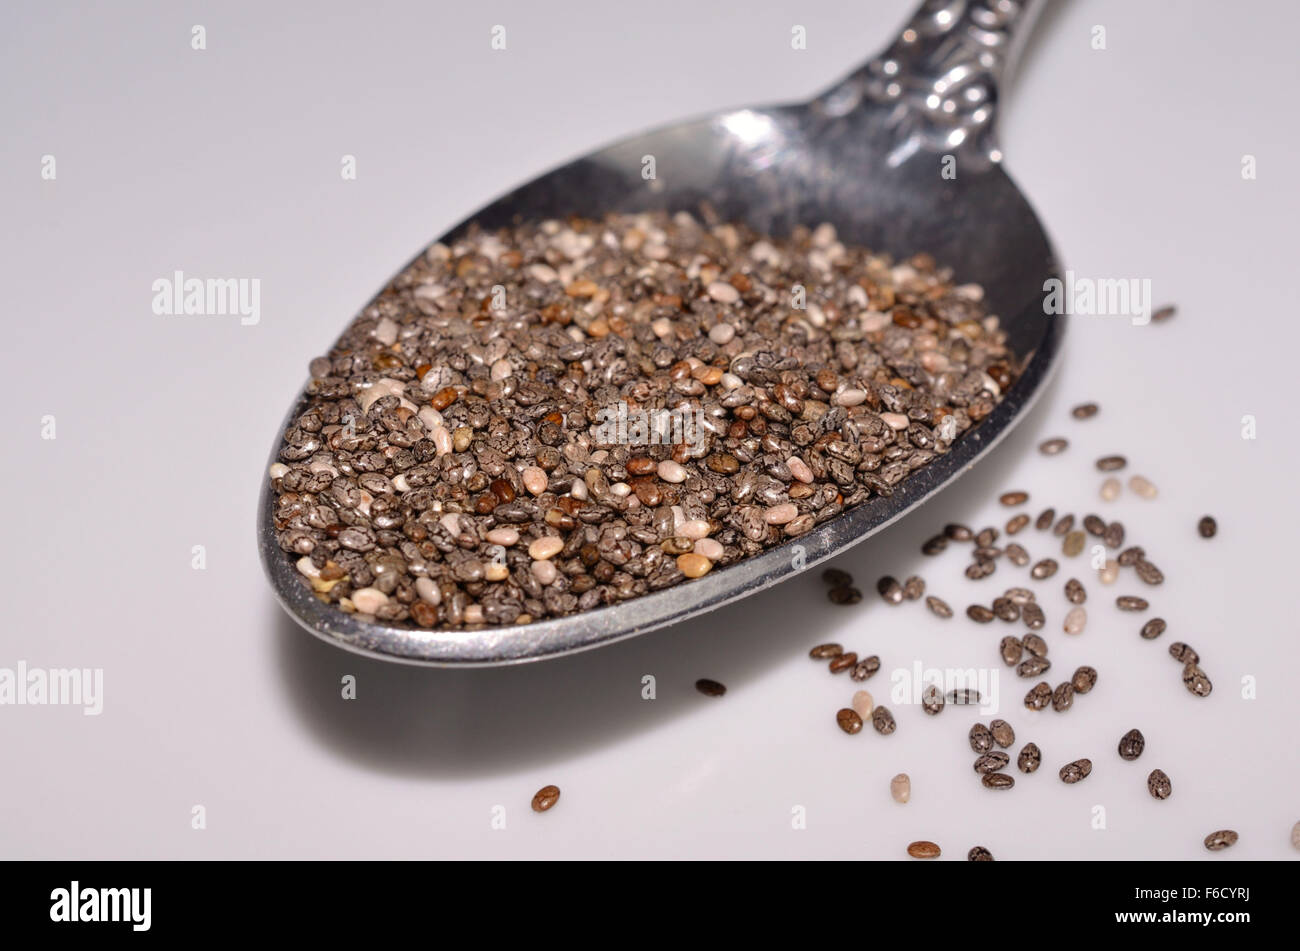 Healthy organic chia seed grains in a spoon - Stock Image